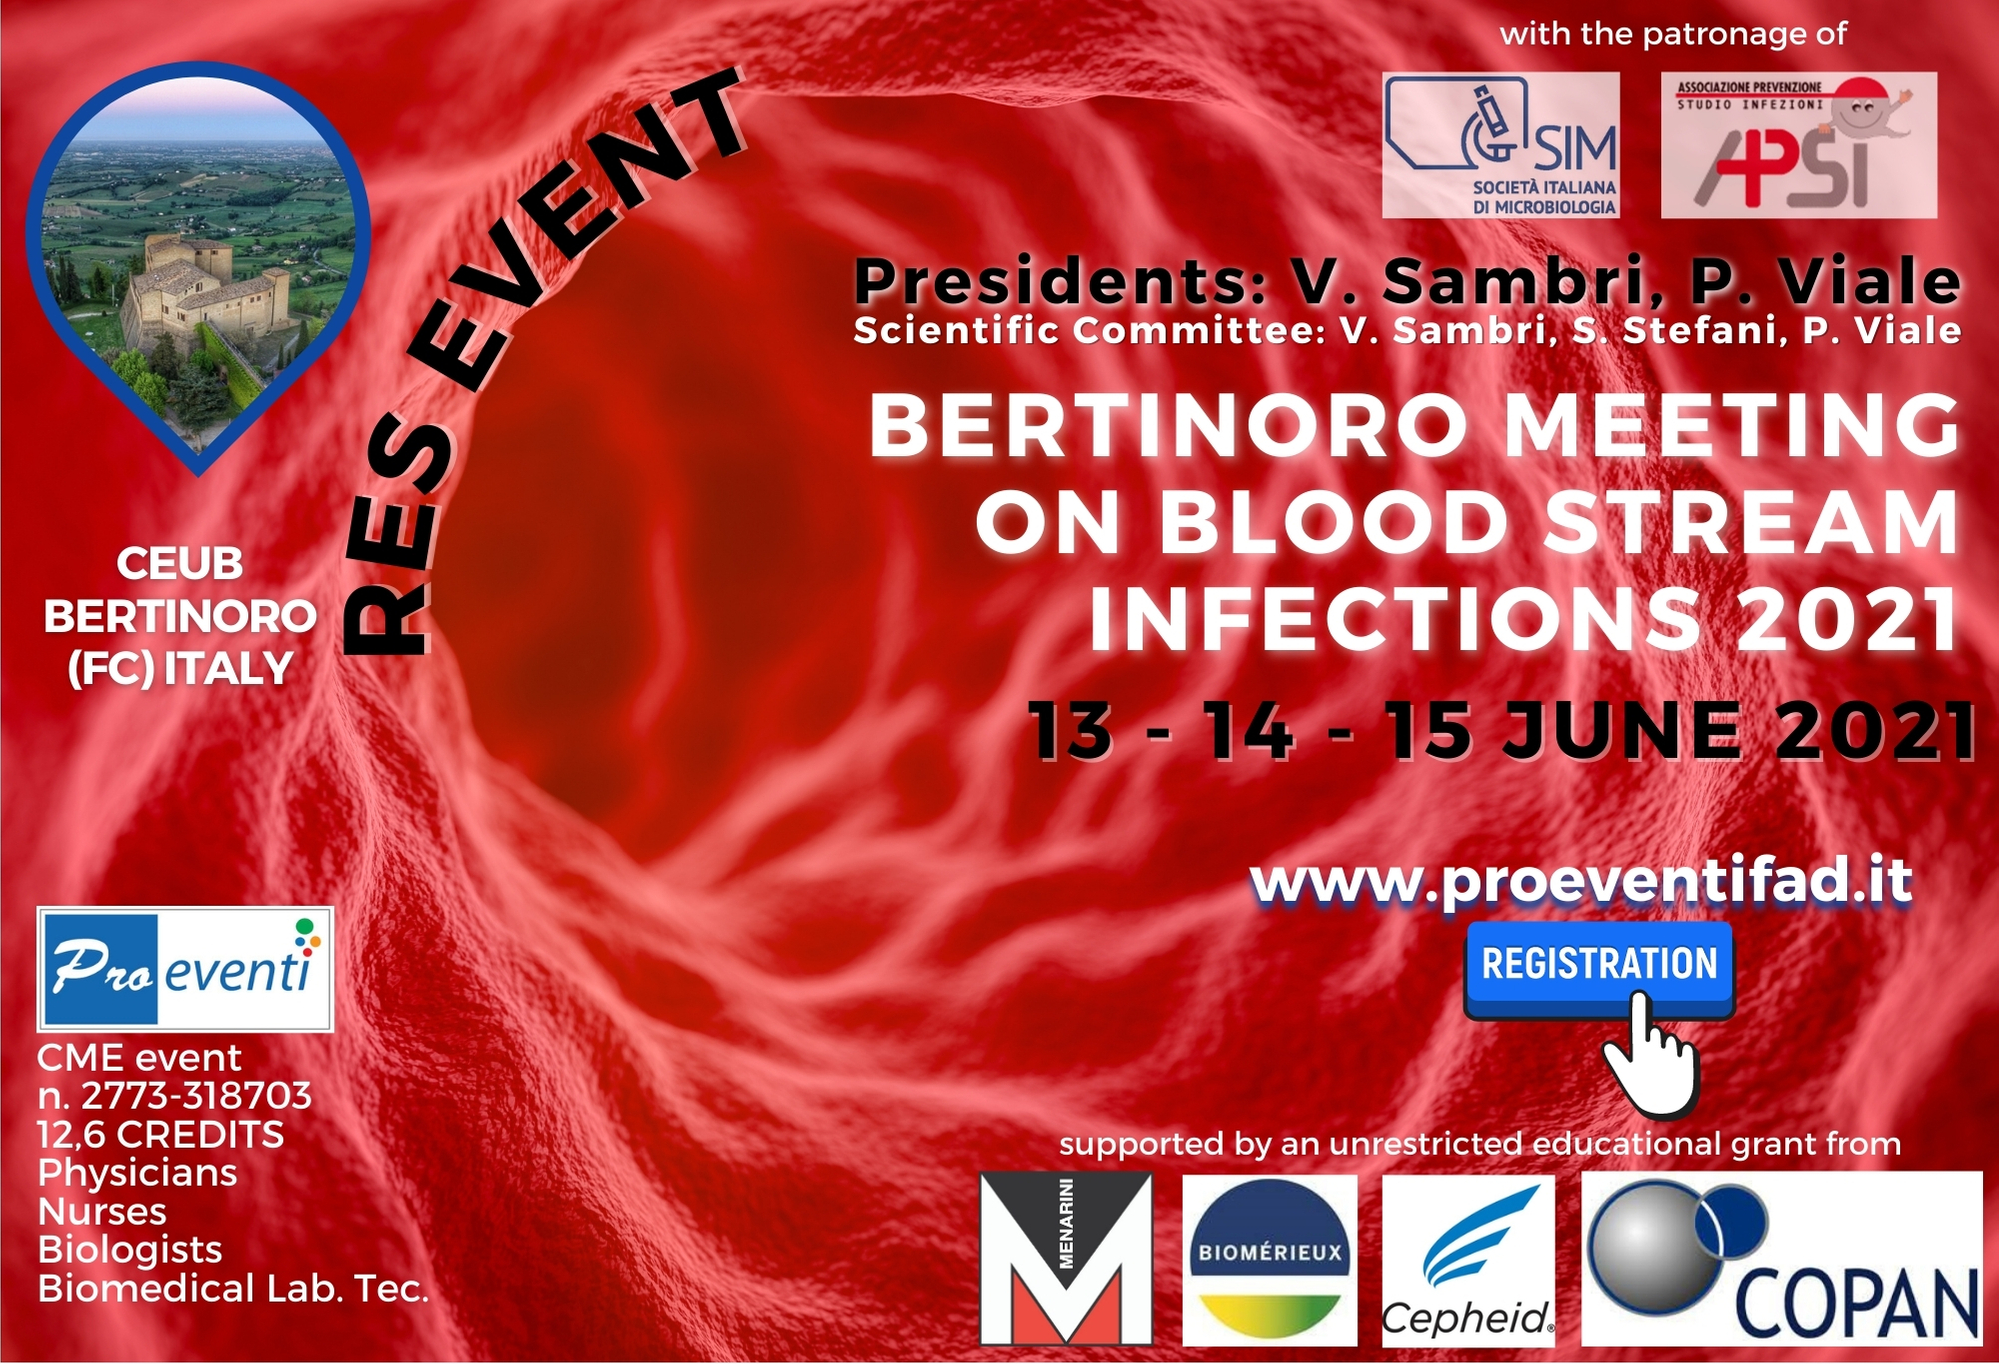 RES- BERTINORO MEETING ON BLOOD STREAM INFECTIONS 2021